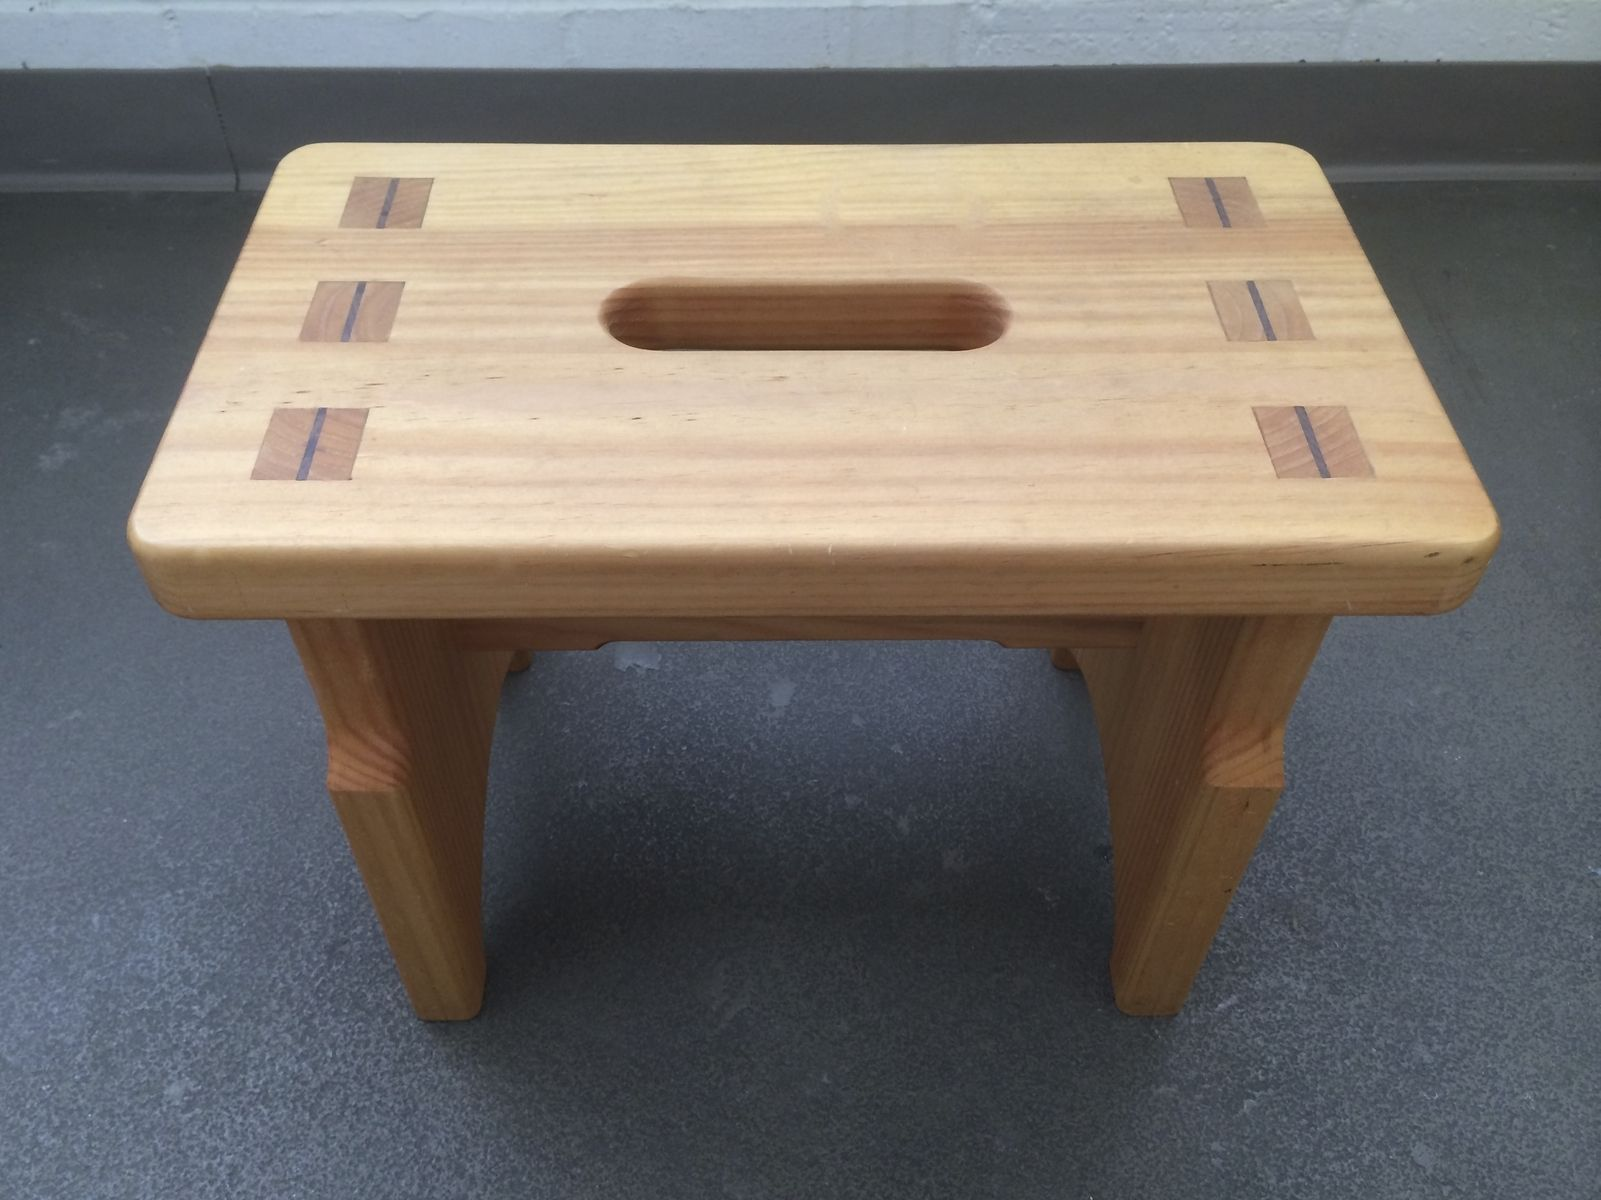 Custom made mortise tenon step stool